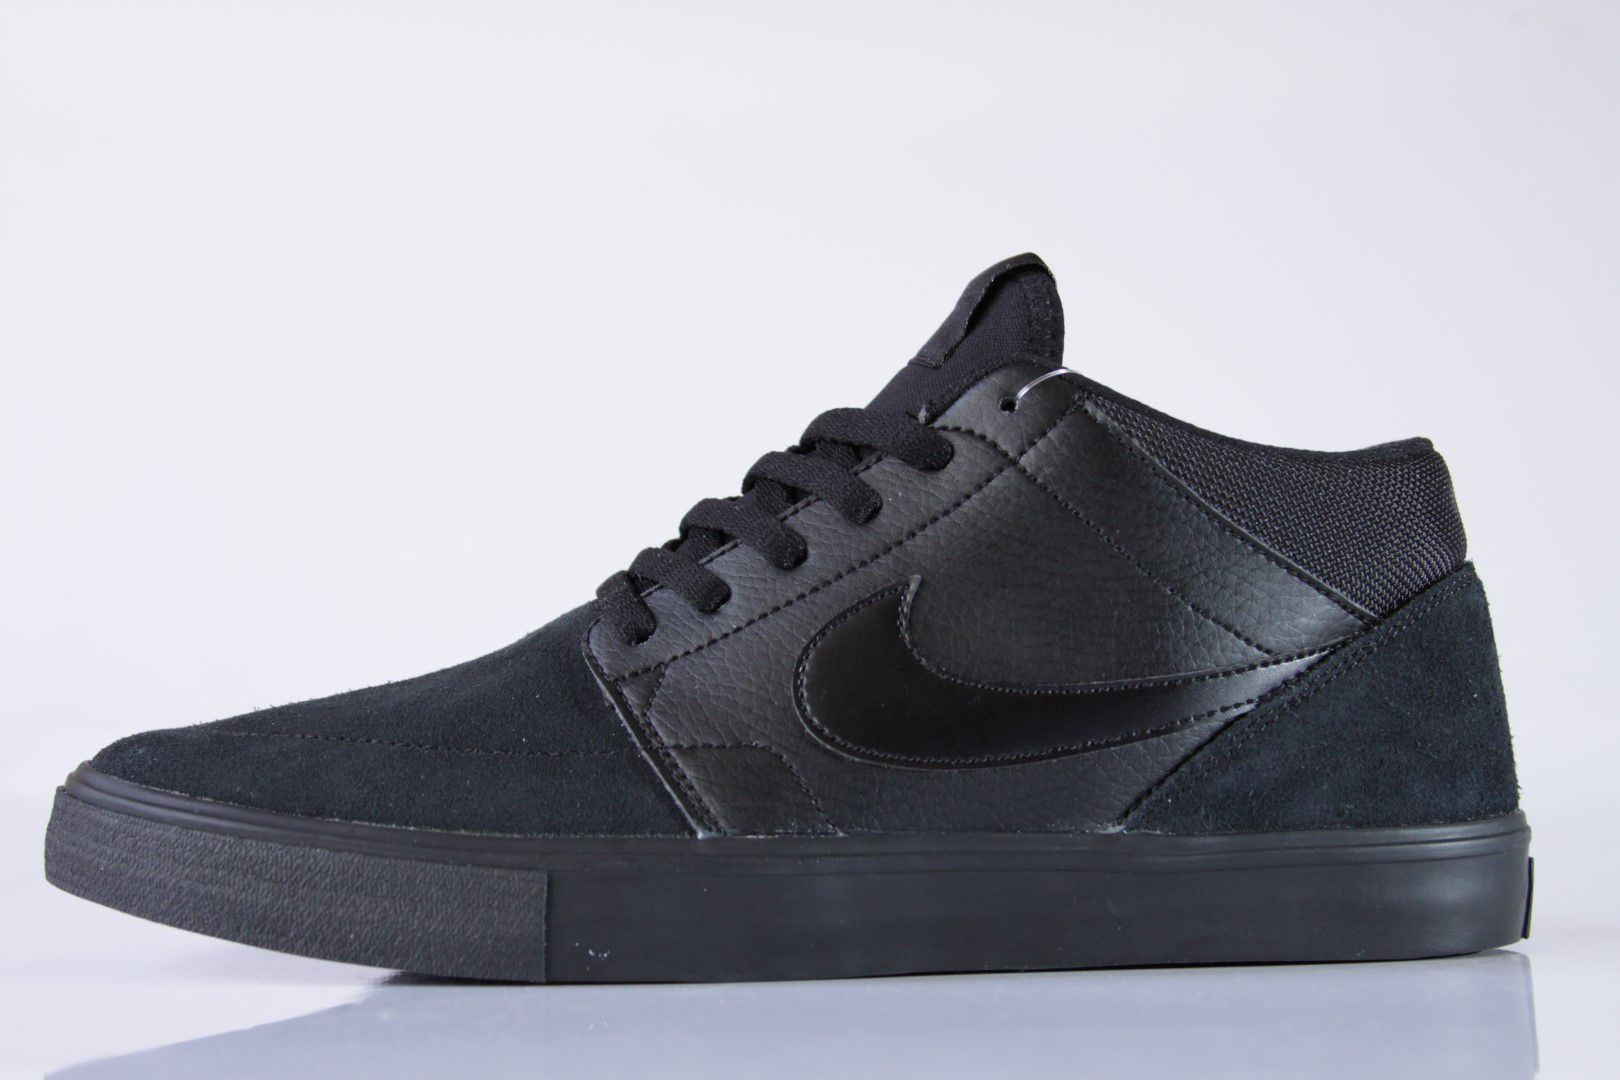 Tênis Nike SB - Portmore II Solarsoft Mid Black/Black-Anthracite  - No Comply Skate Shop